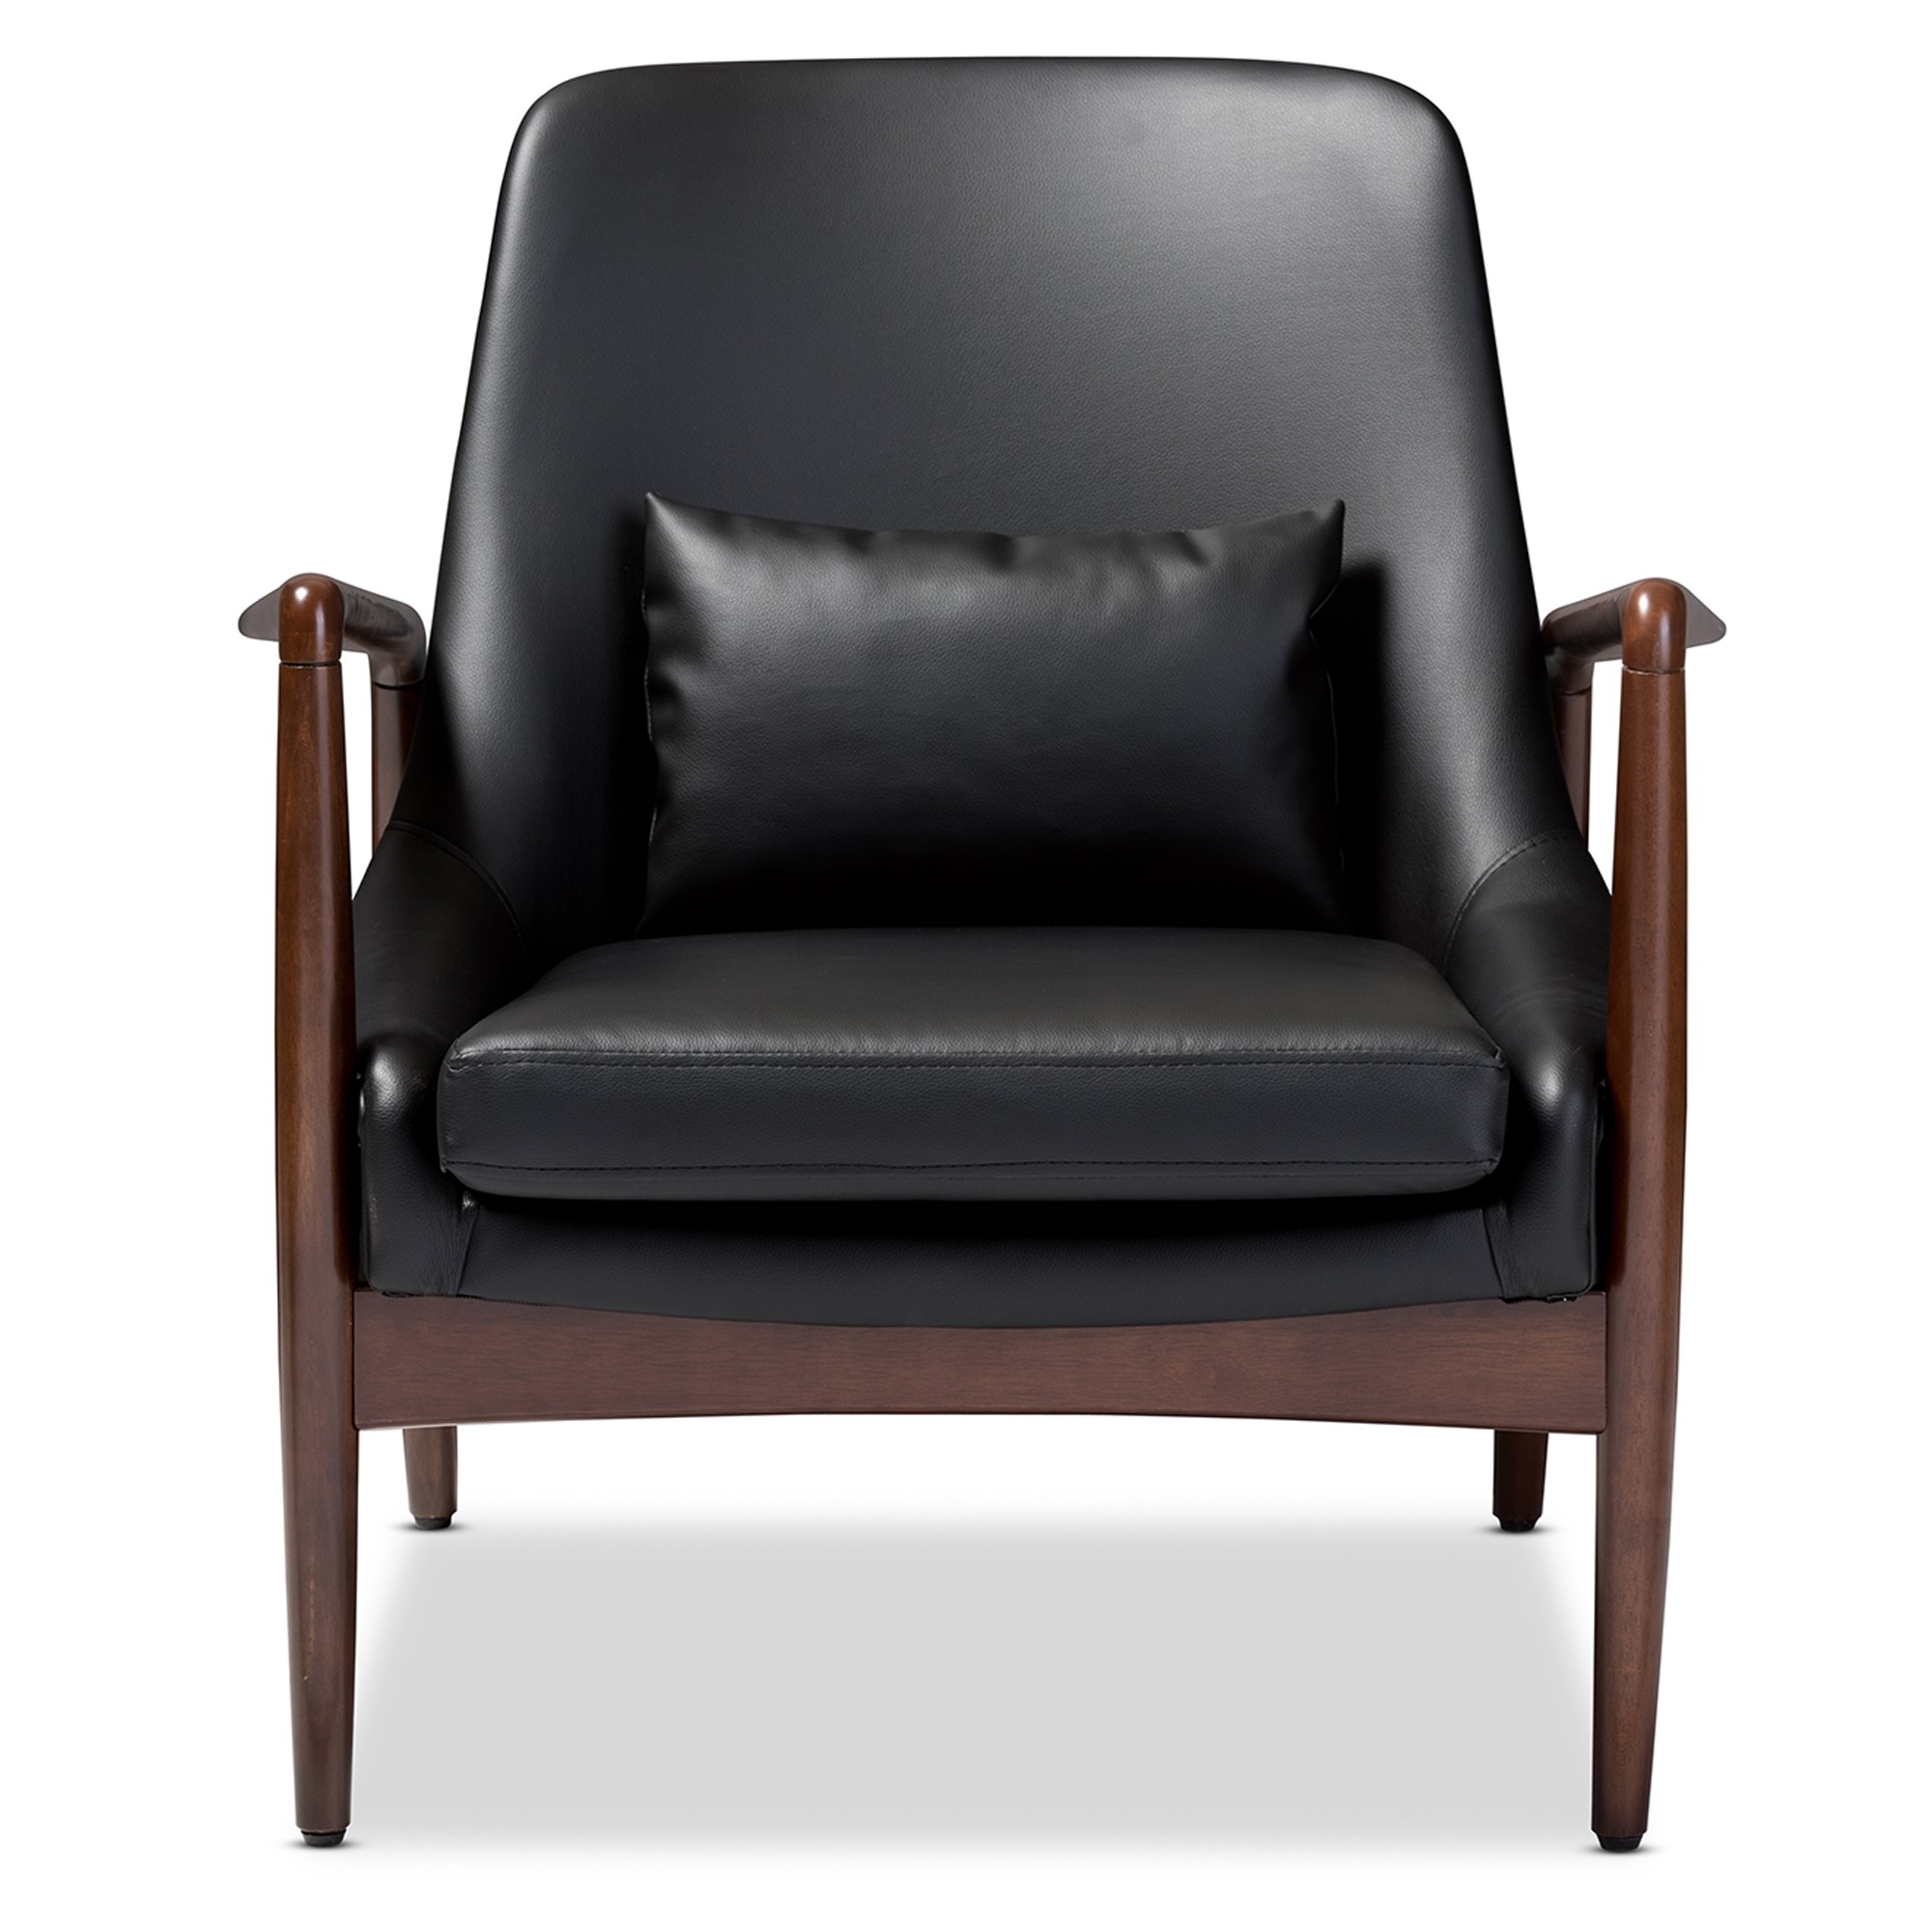 Merveilleux Baxton Studio Carter Mid Century Modern Retro Black Faux Leather  Upholstered Leisure Accent Chair In ...